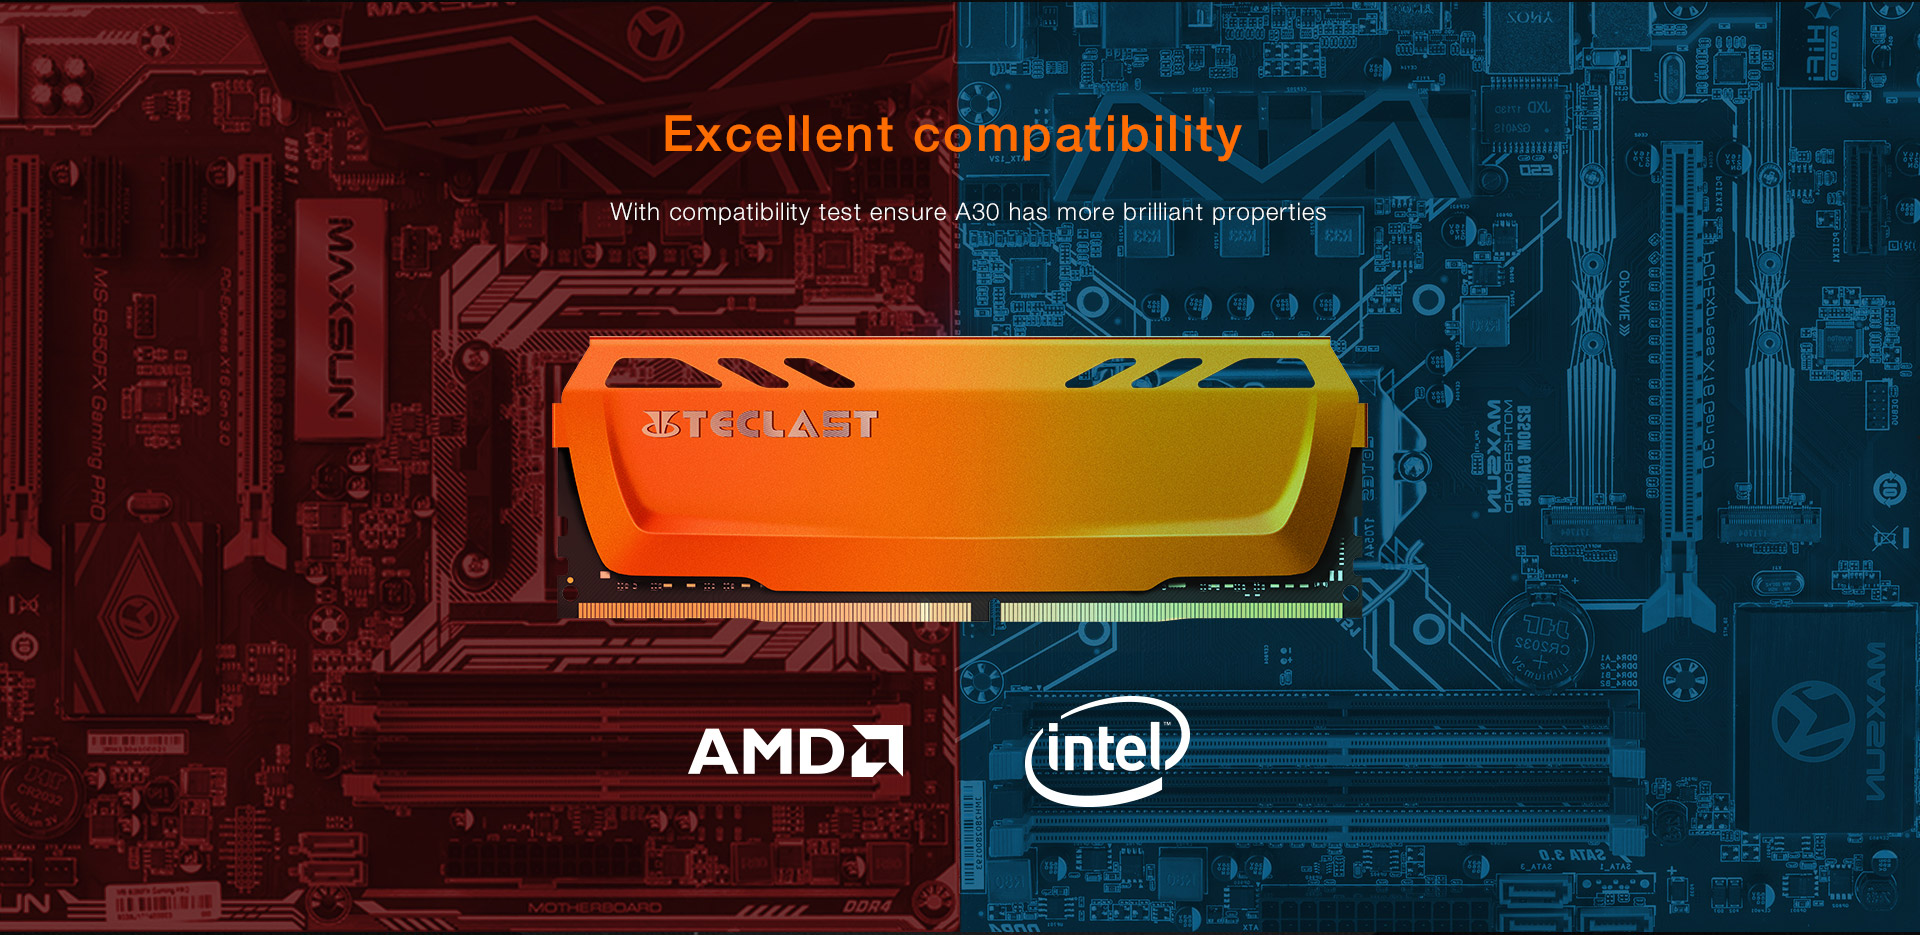 Teclast A30 DDR4 8G 2400Mhz Desktop Computer Memory 288Pin DIMM PC Gaming Memory